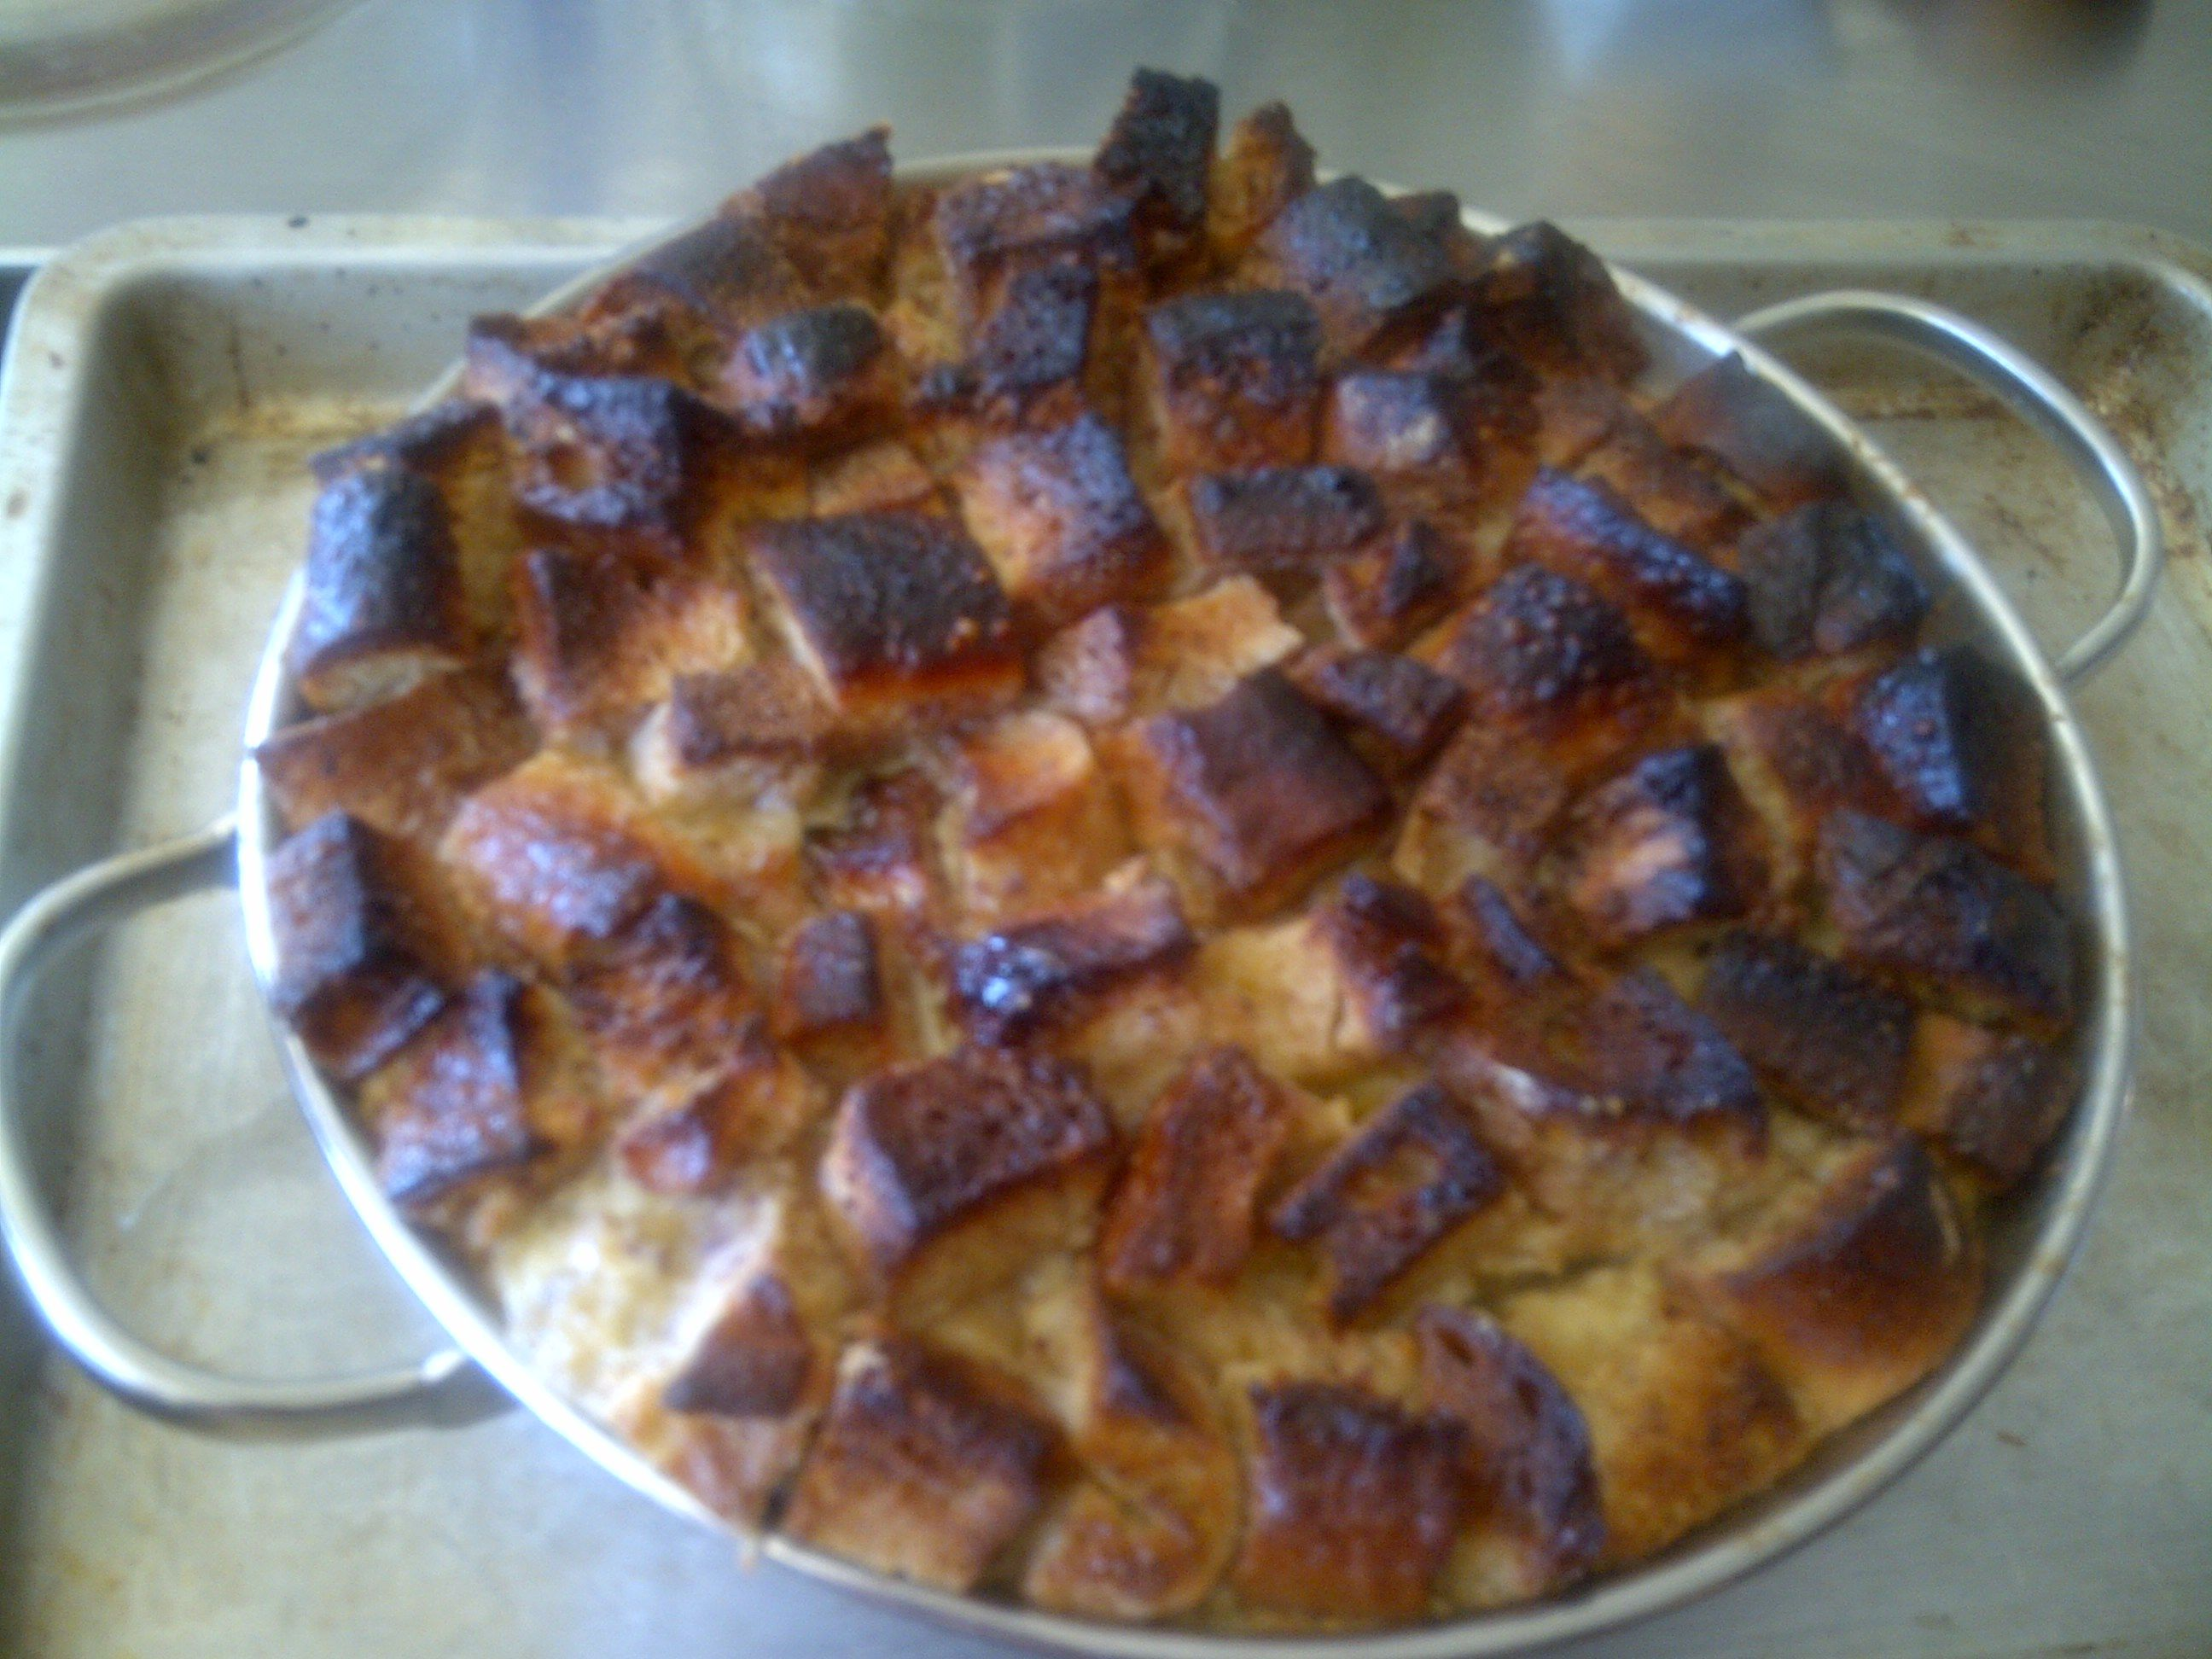 Nancys-bread-pudding.jpg (2592×1944)